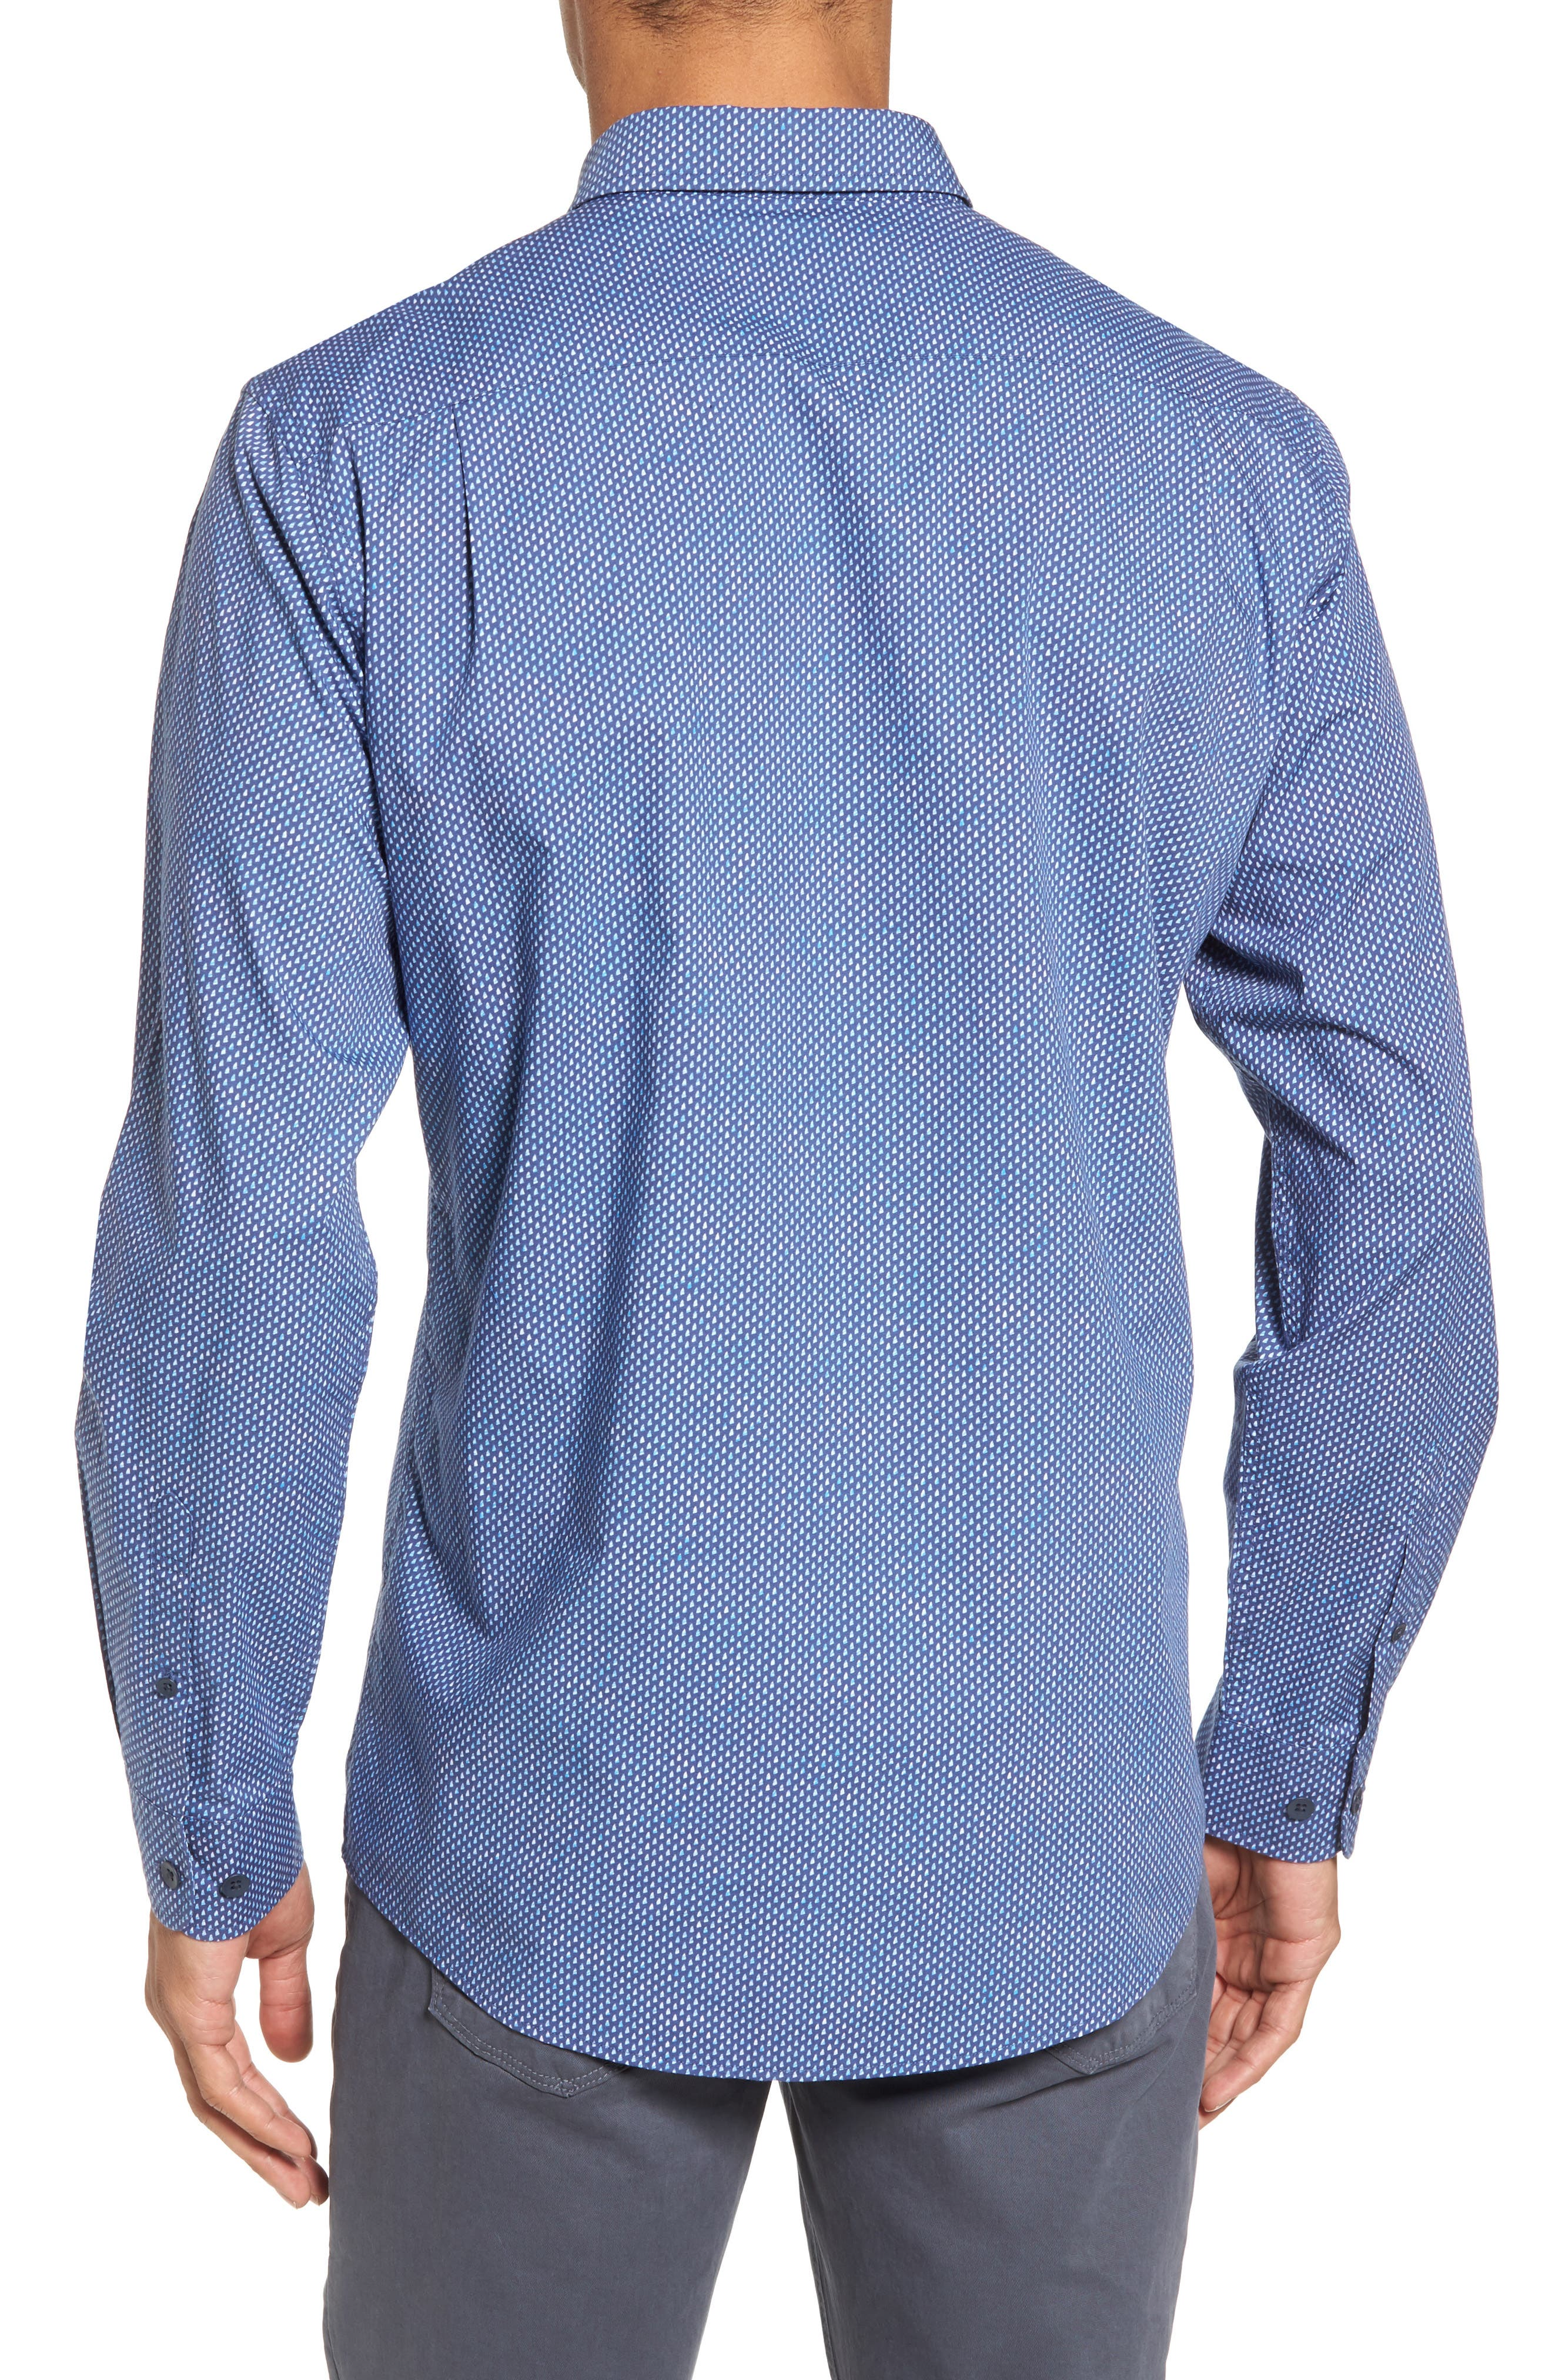 Cape Farewell Sports Fit Print Sport Shirt,                             Alternate thumbnail 2, color,                             Pacific Blue